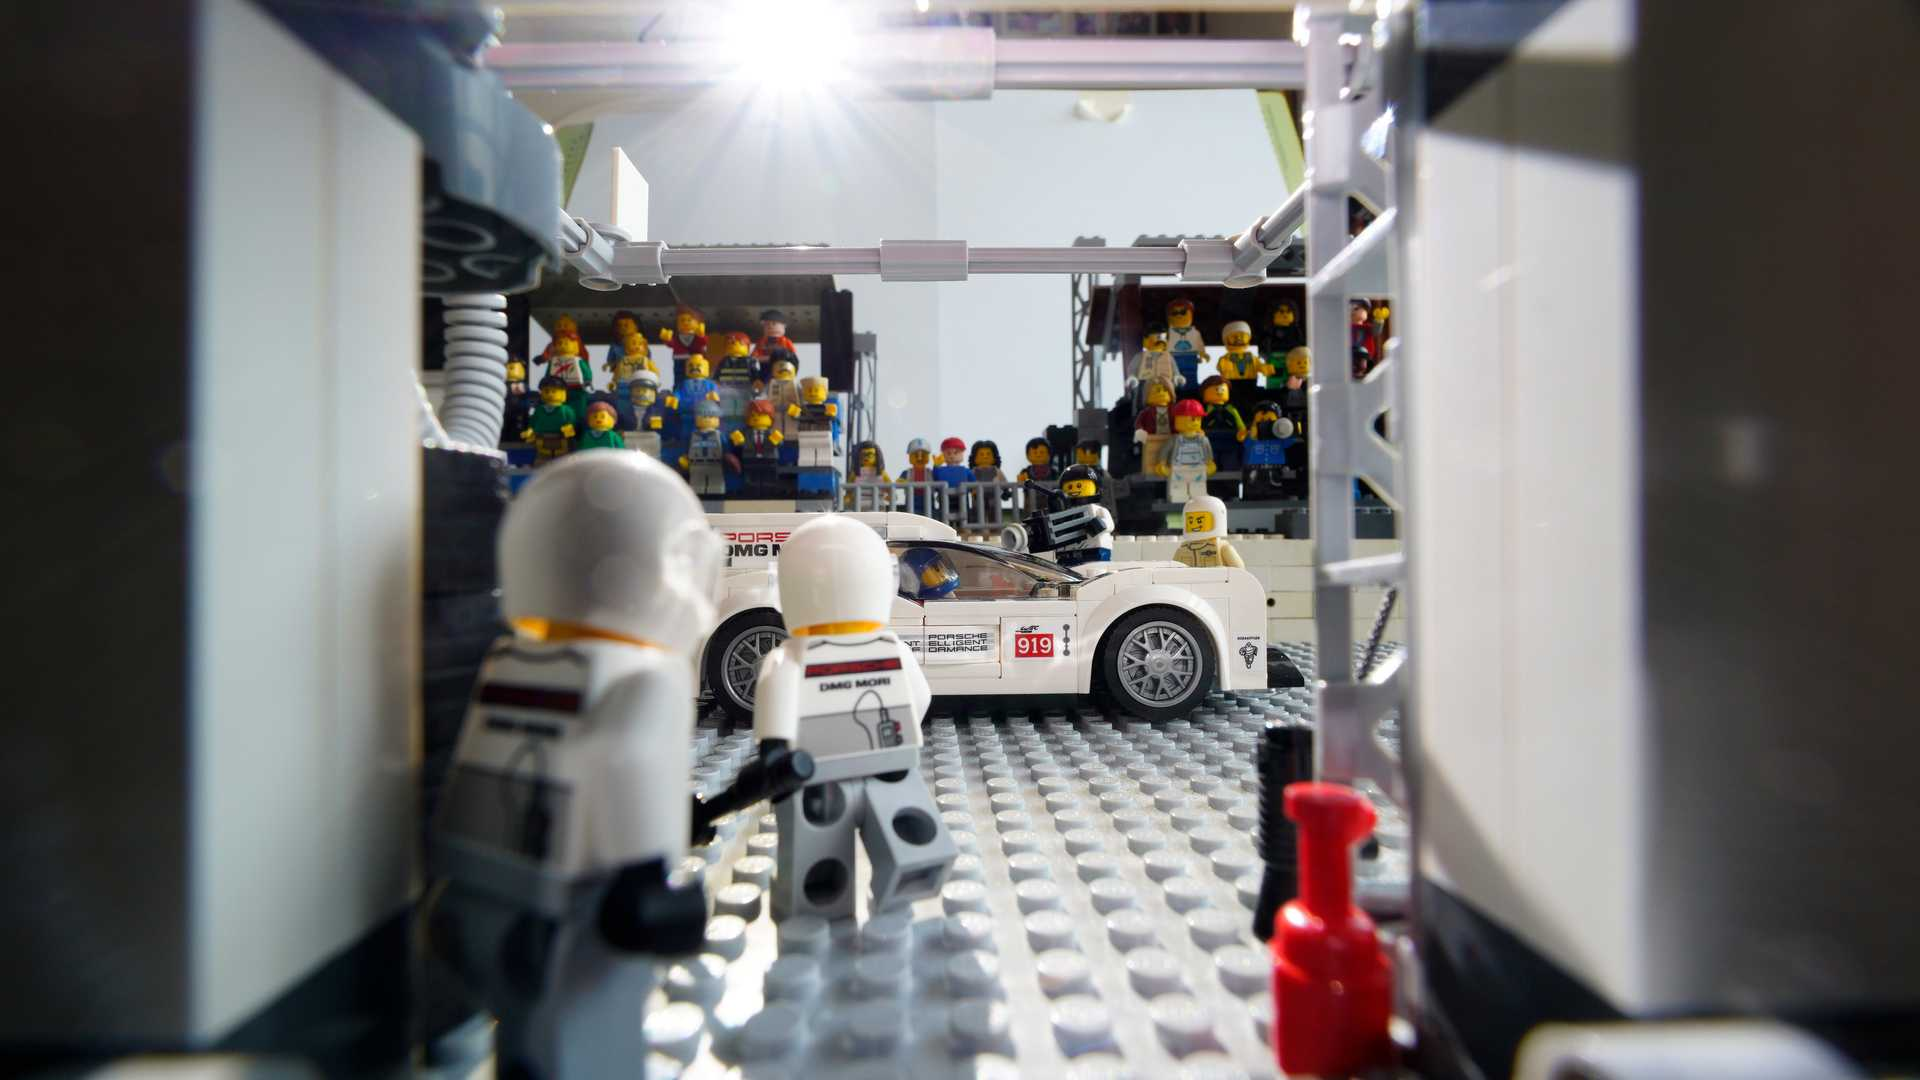 Porsche-Iconic-Moments-In-Lego-5